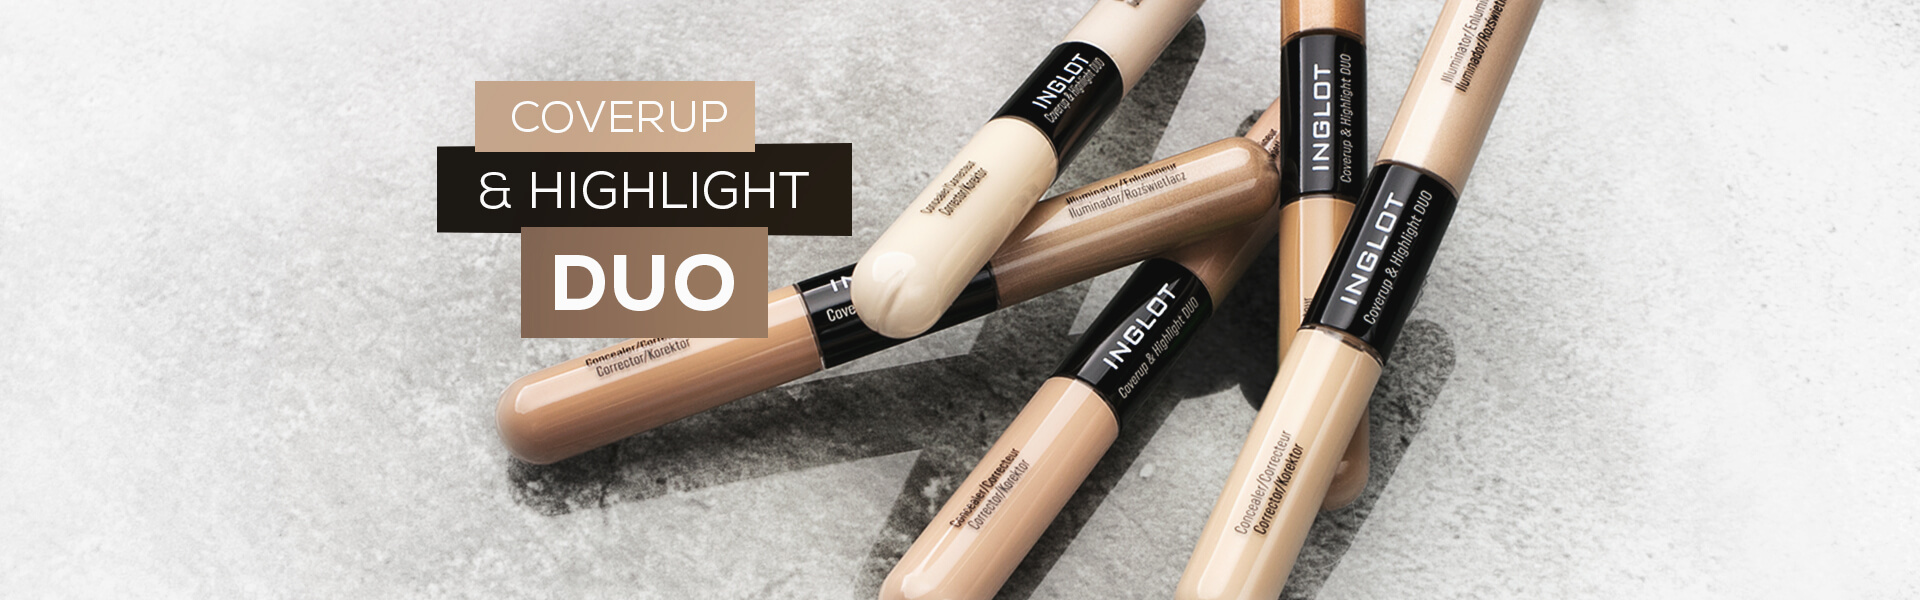 coverup-highlight-duo---slider-multi-3